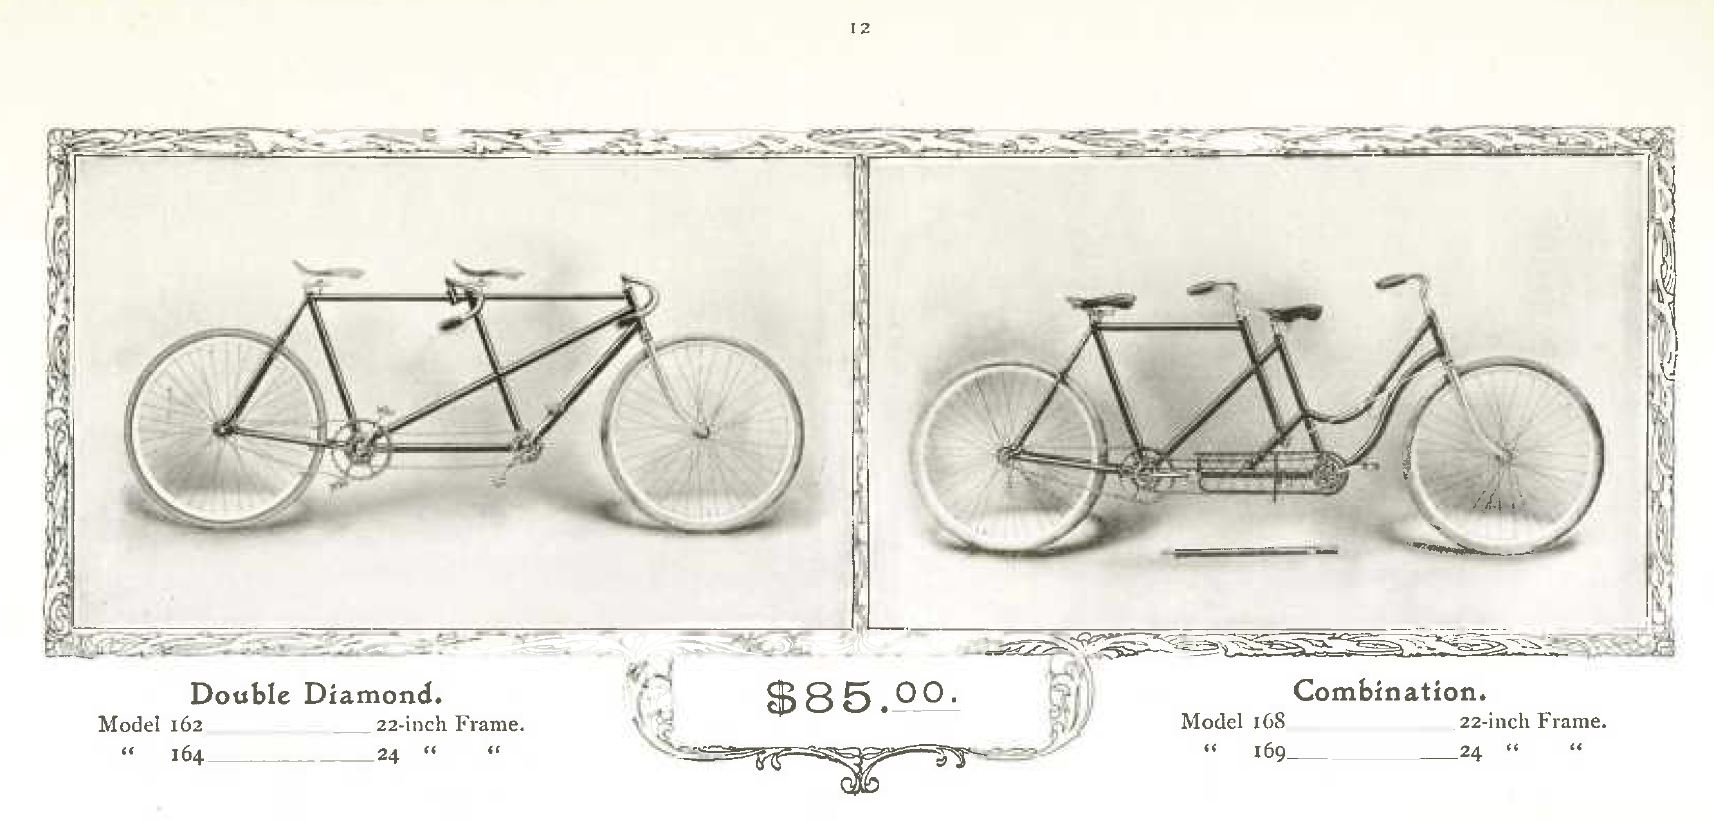 1899 Page 12 Tandems.JPG